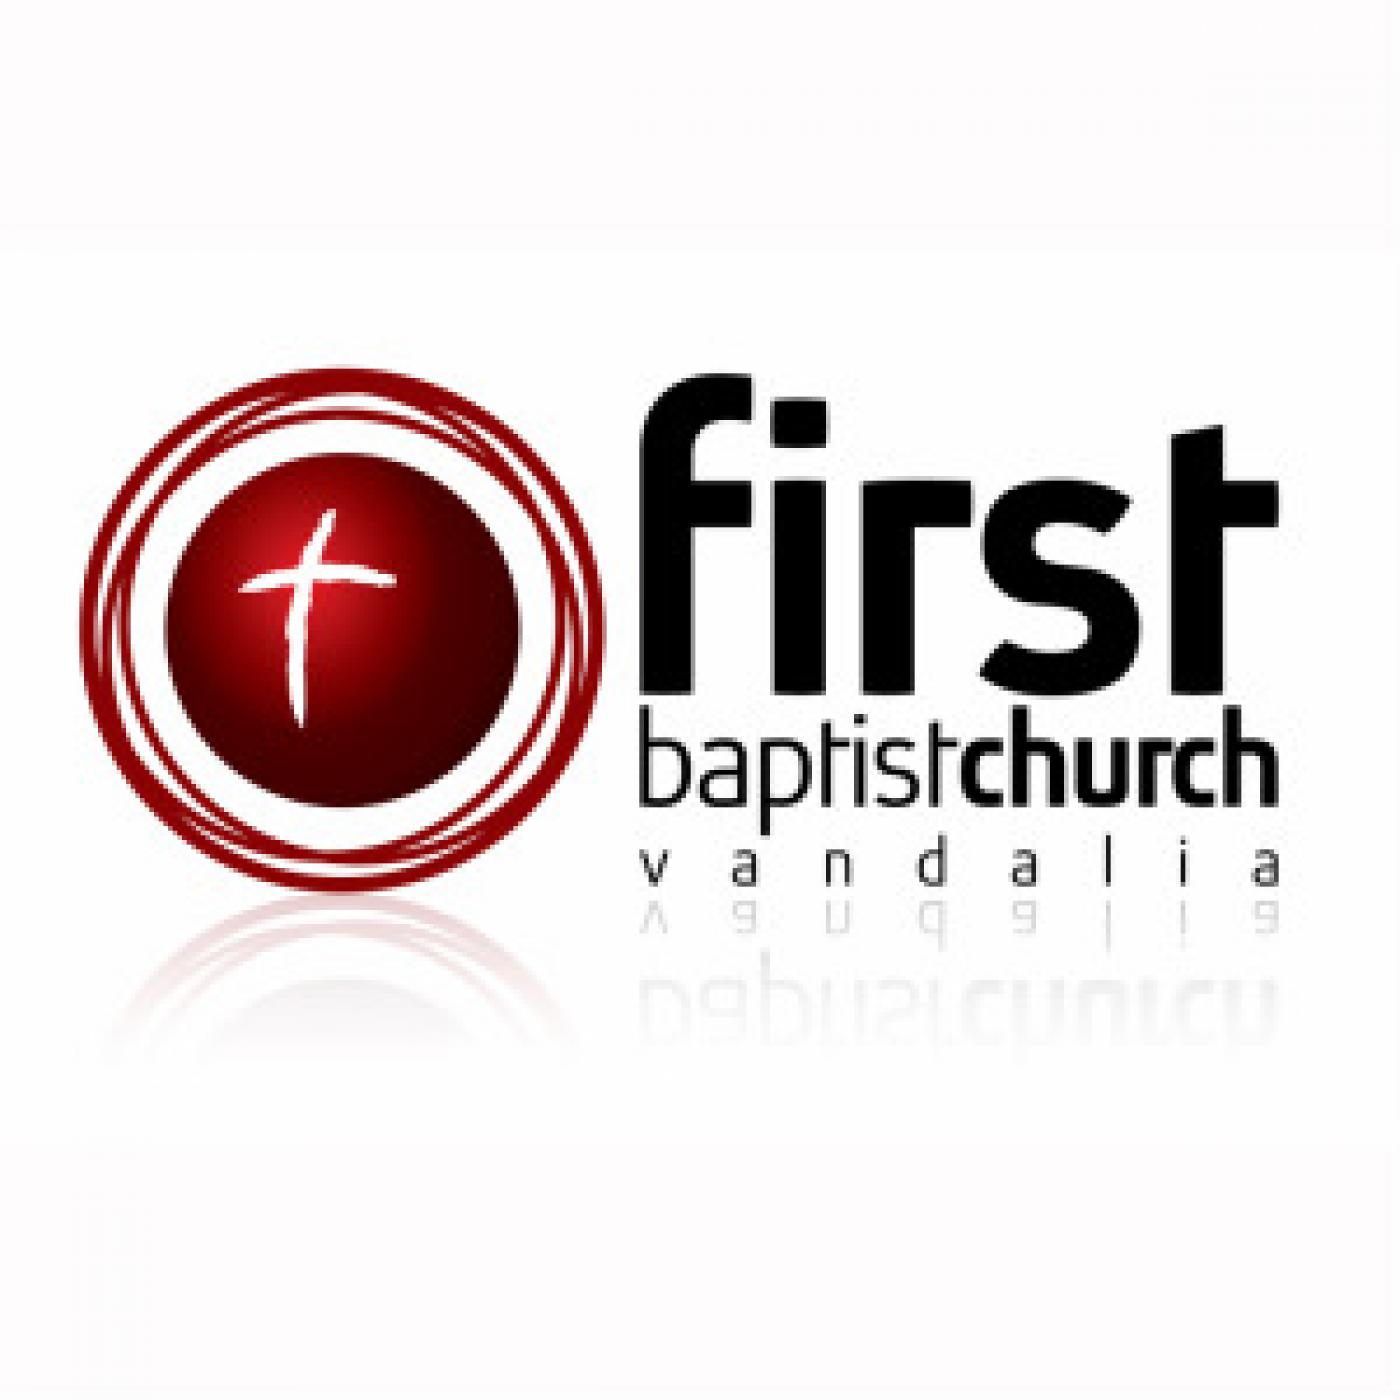 First Baptist Church of Vandalia